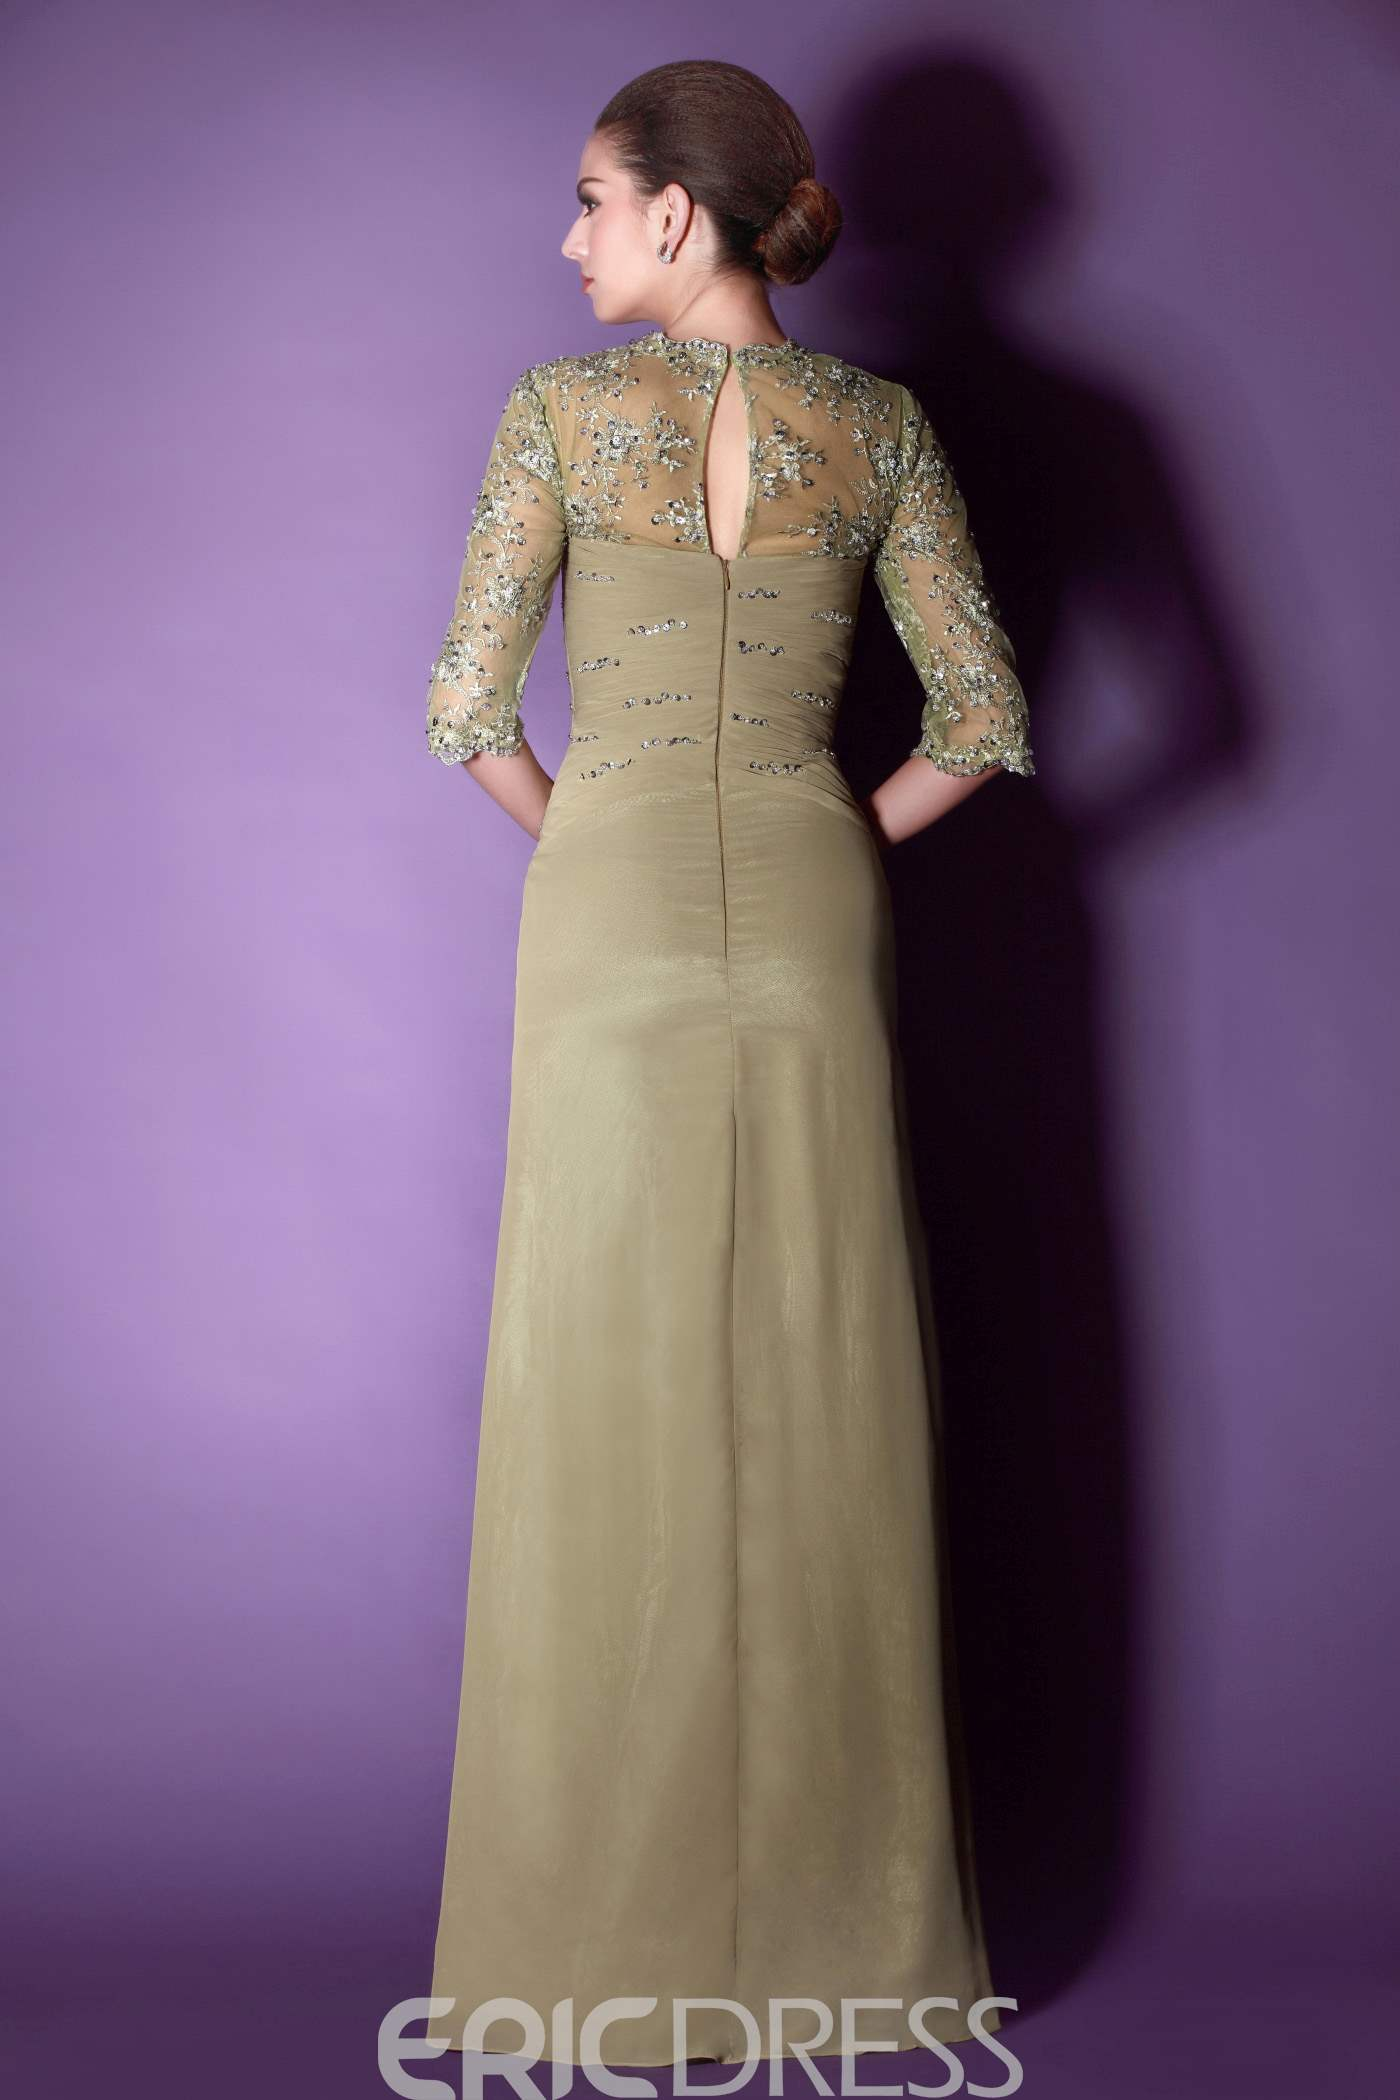 Ericdress Lace/Appliques Sheath Floor-Length Square Neck Mother of the Bride Dress